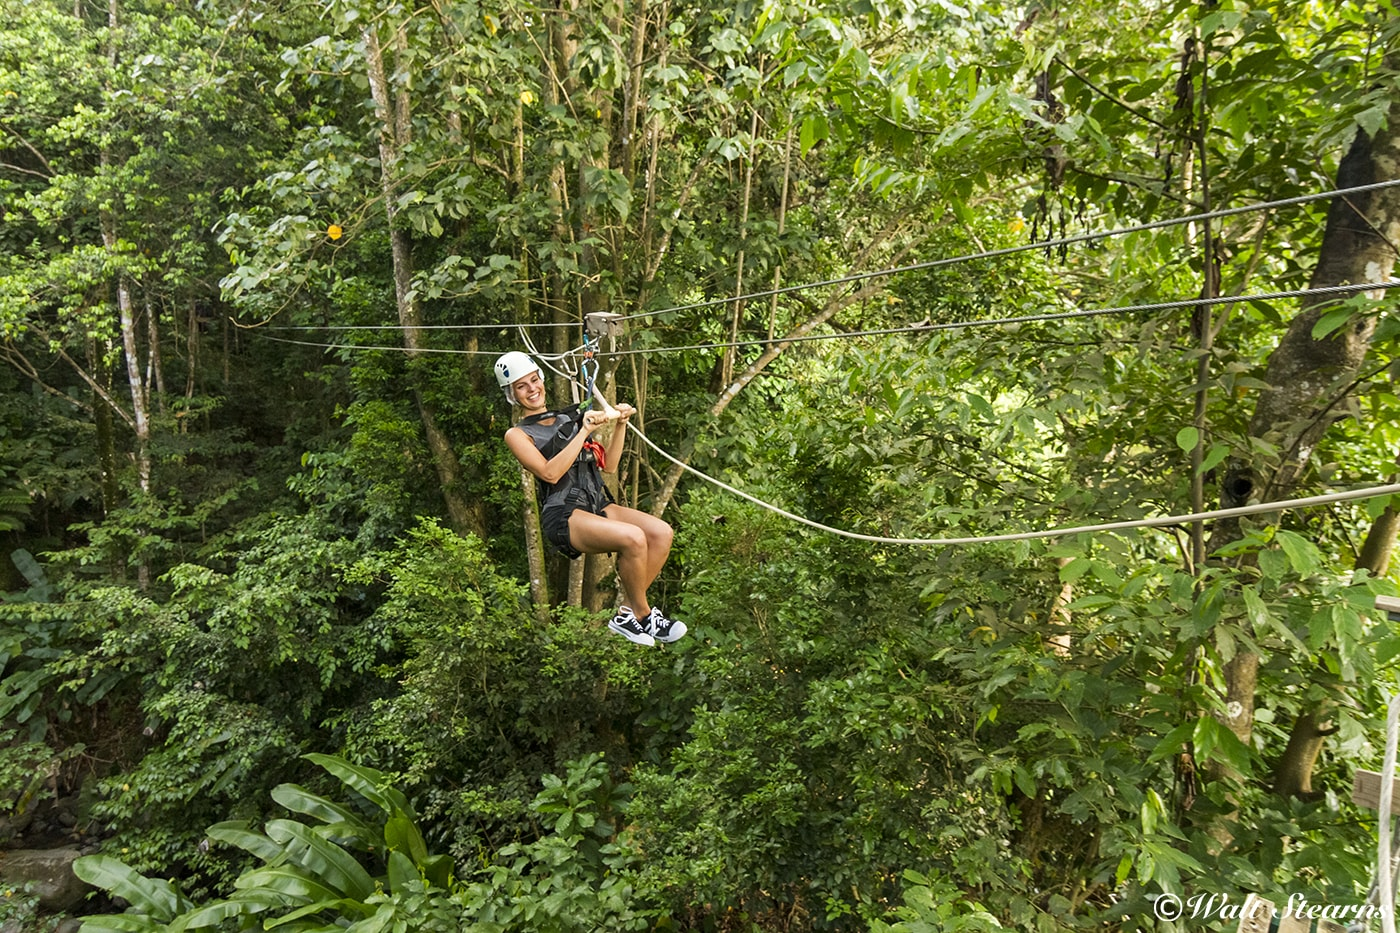 Ziplining is one of the off-property activities that guests can add to the daily schedule of adventures at BodyHoliday.